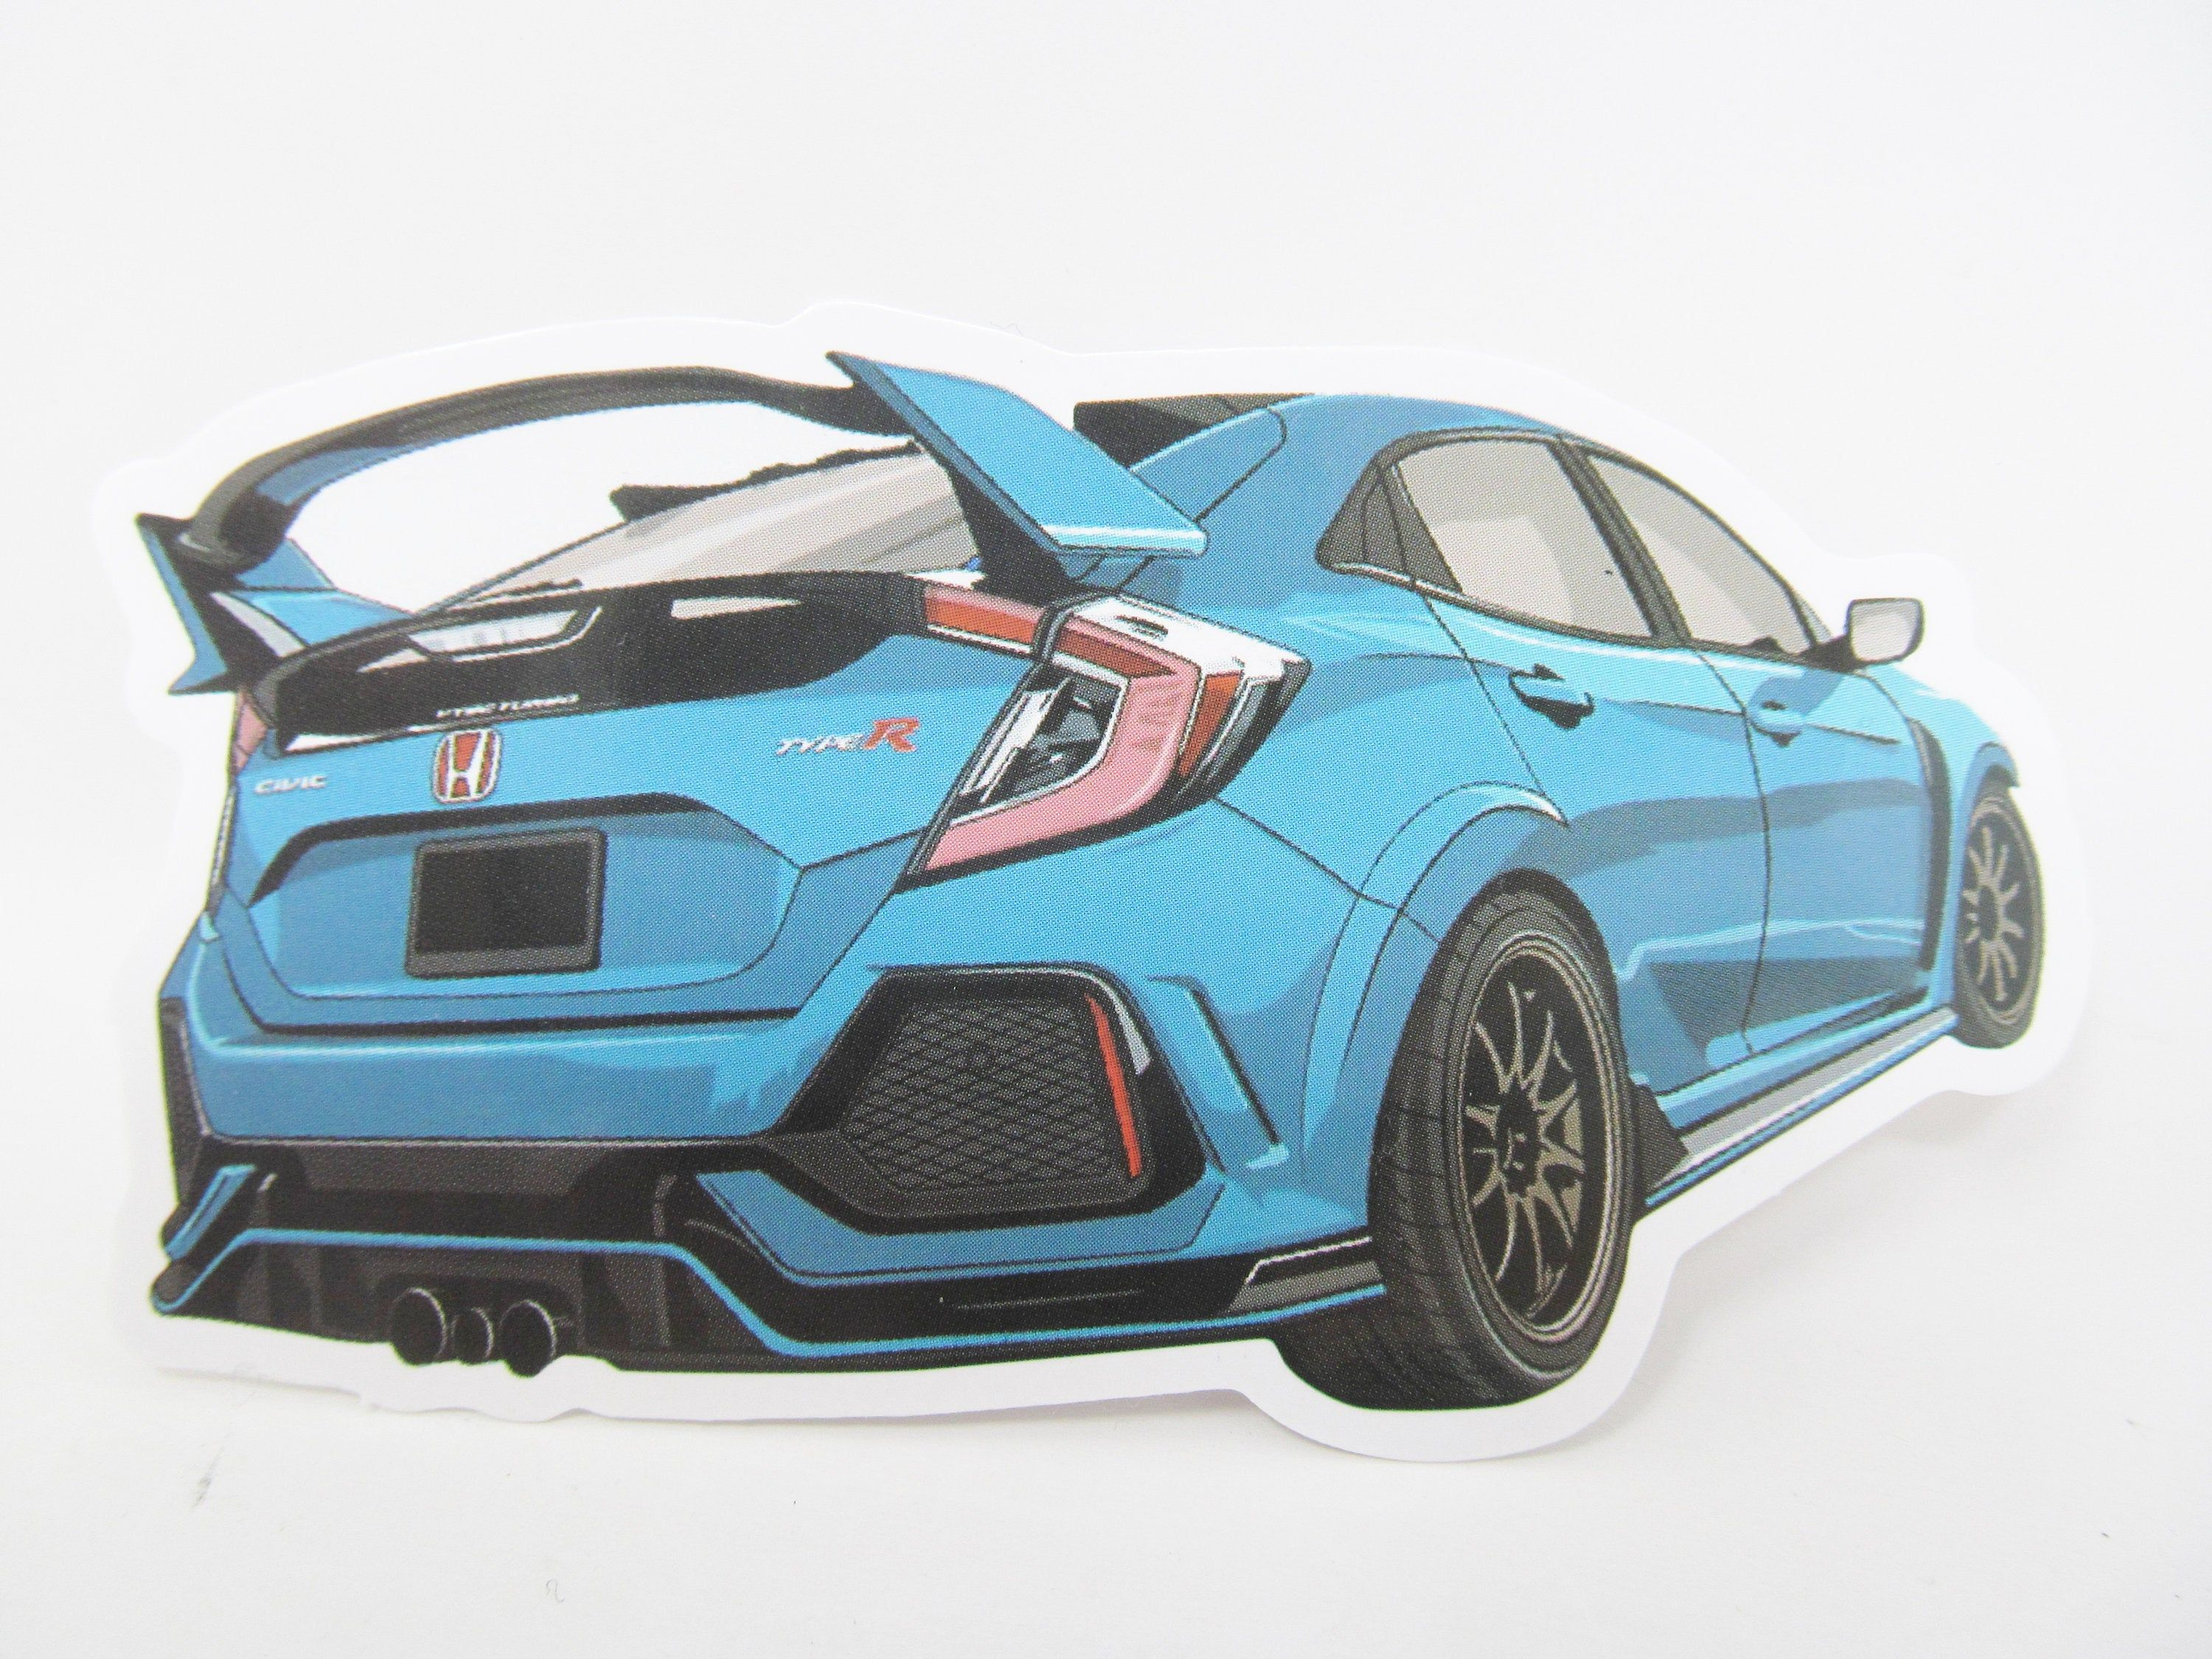 Honda Civic Blue Car Sticker Great For Your Laptop Water Bottle Cell Phone Etc Ships Next Day By Cellardeals On In 2021 Honda Civic Honda Civic Car Civic Car [ 2250 x 3000 Pixel ]